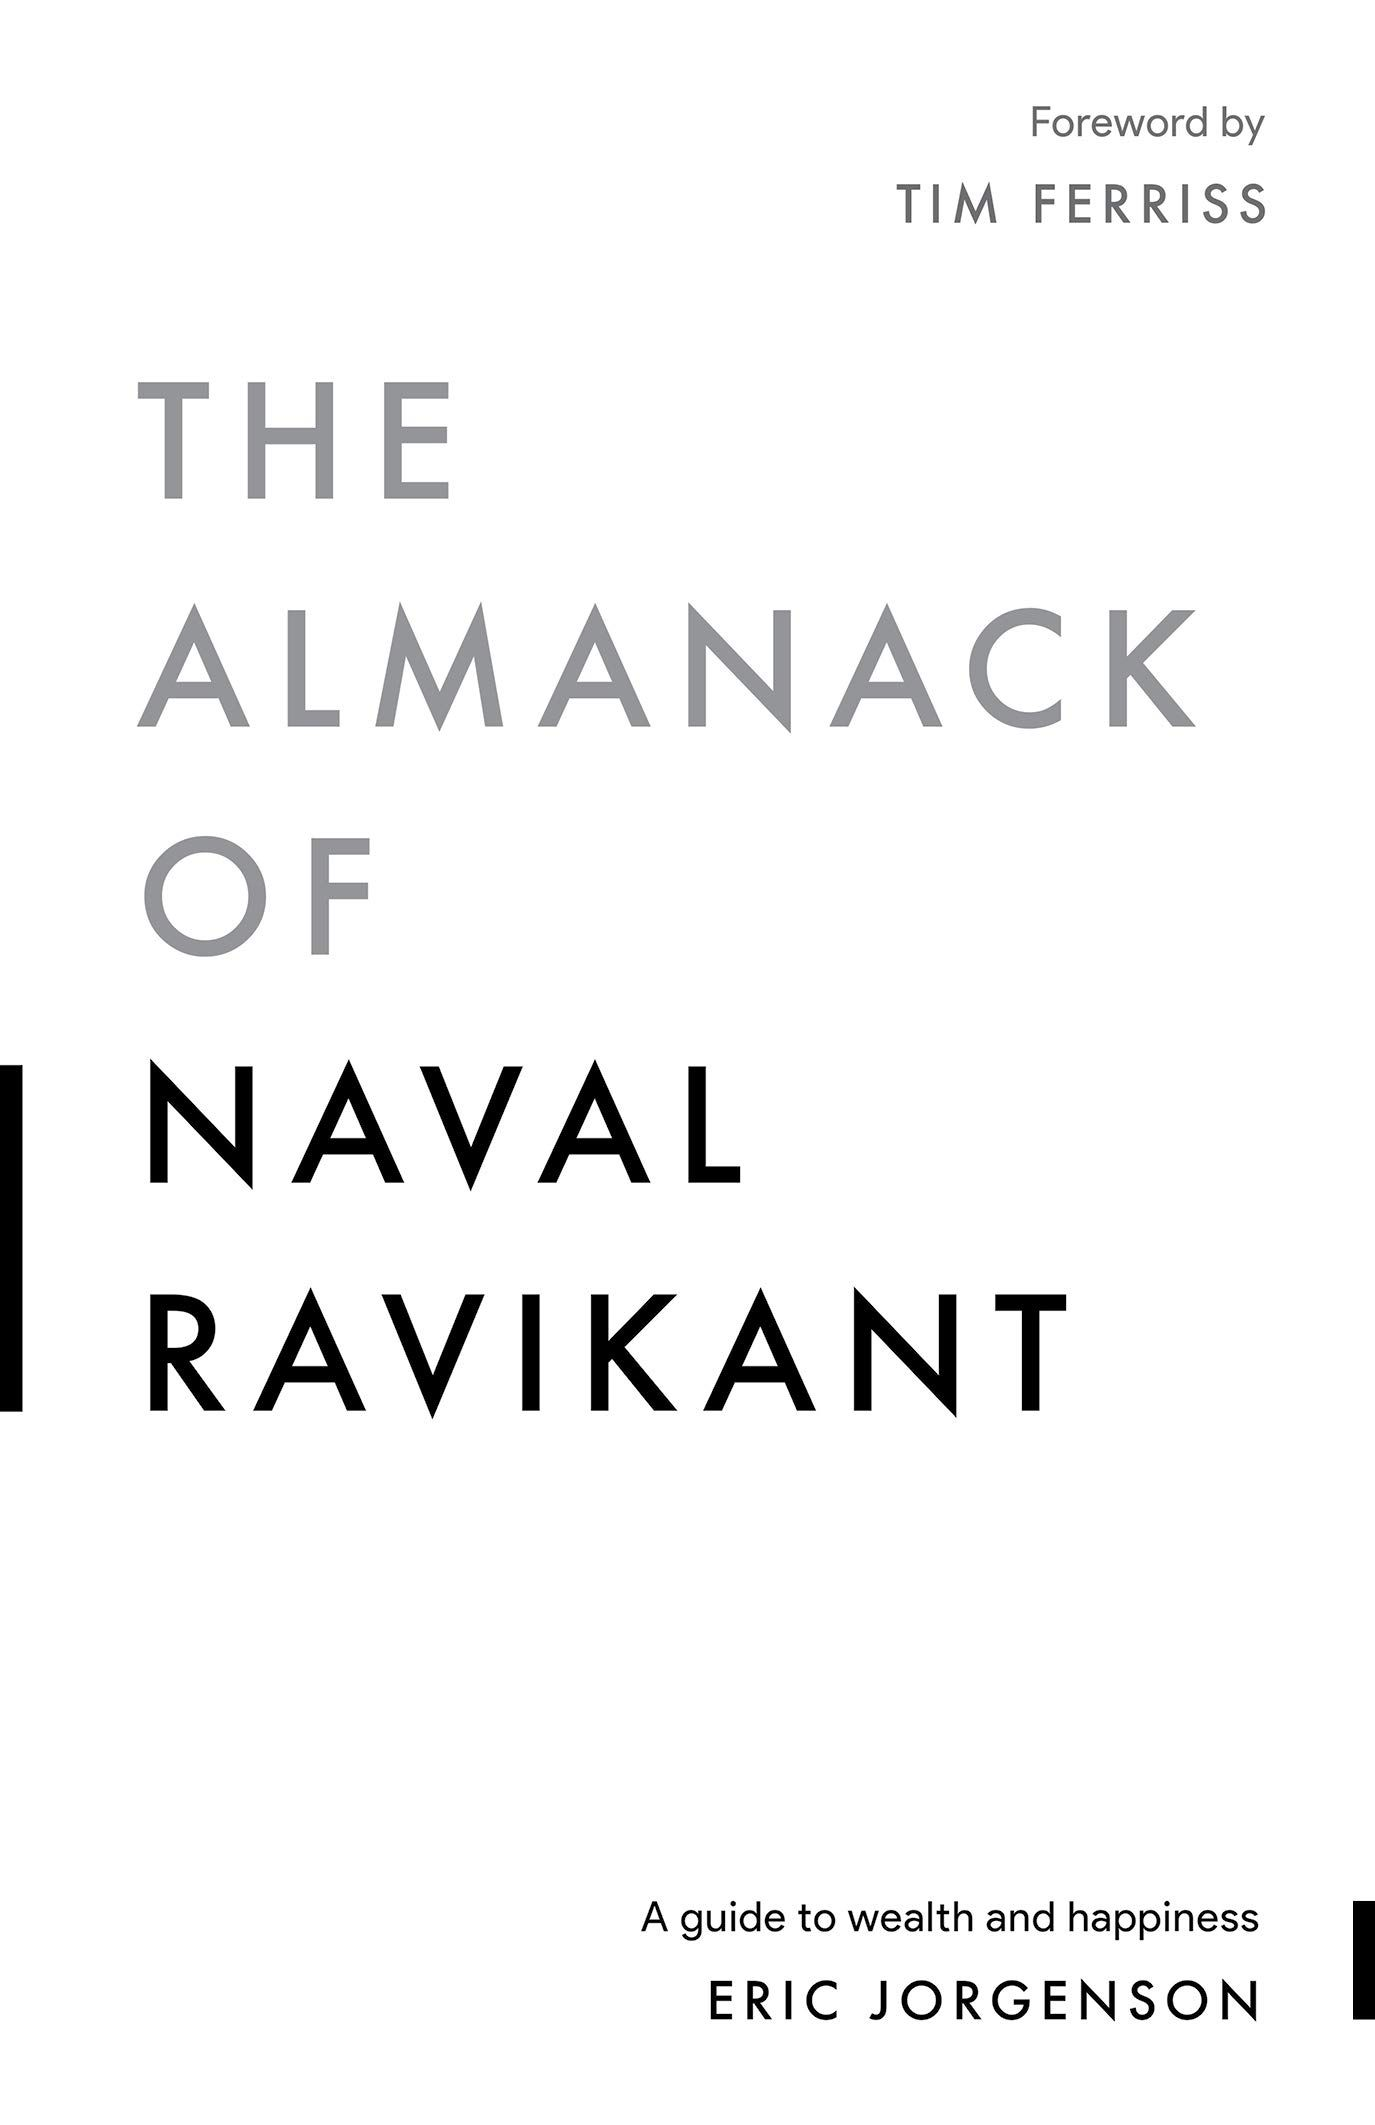 The Almanack of Naval Ravikant book cover on the LBS website